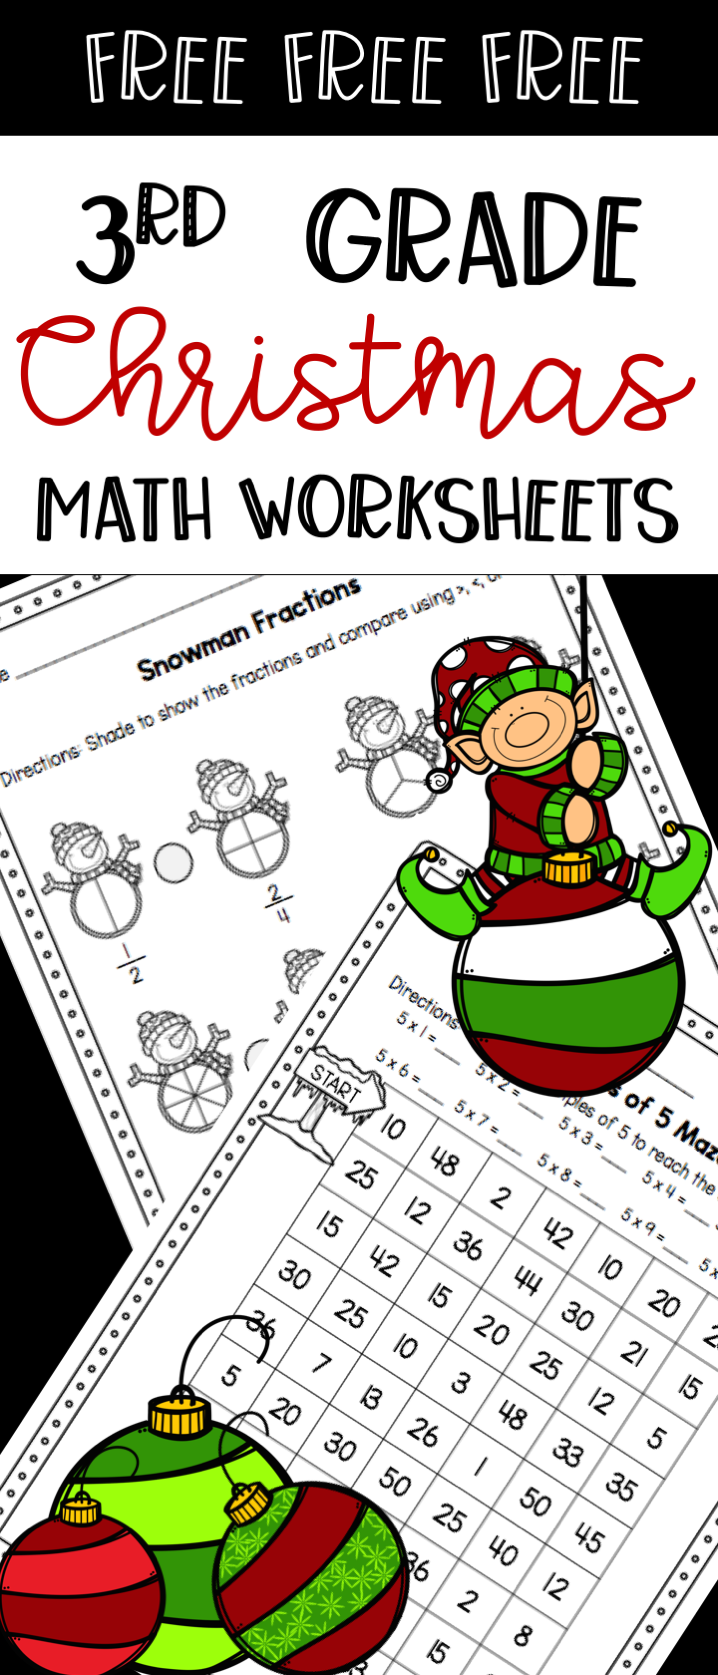 Free 3rd grade Christmas math worksheets - comparing fractions and ...